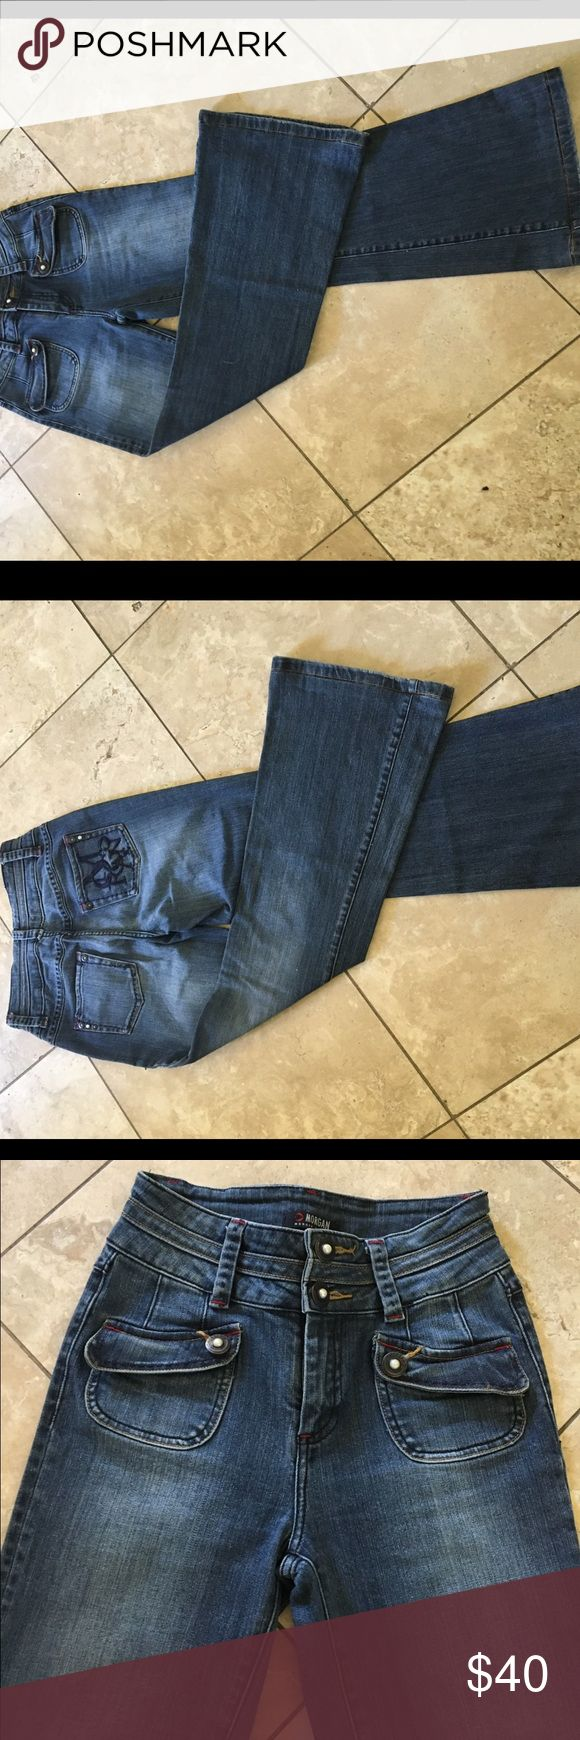 Super looking flared jeans Super looking flared &cropped jeans in medium wash , pearl buttons by Morgan French Brand Morgan De Toi Jeans Flare & Wide Leg